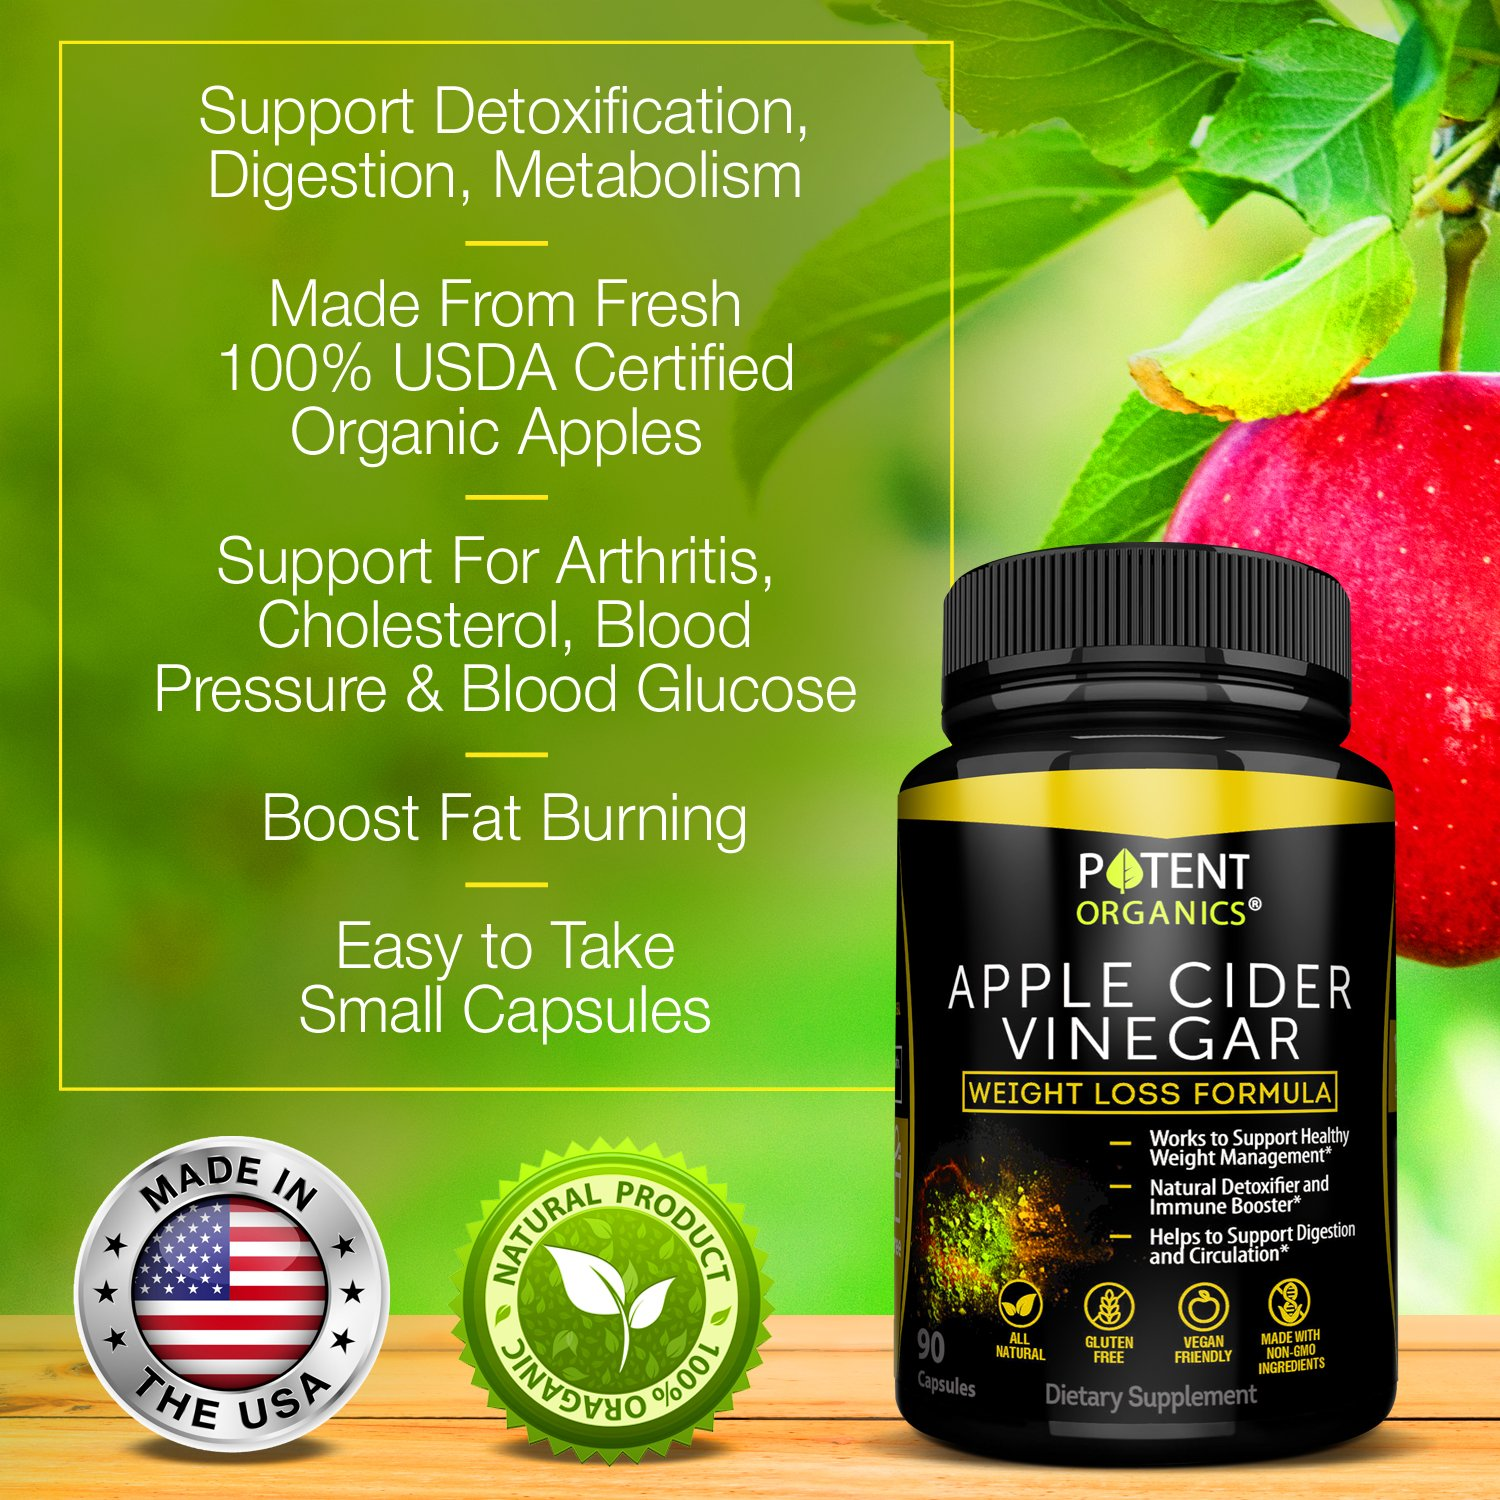 100% Organic Apple Cider Vinegar - 90 Capsules For Healthy Diet & Weight Loss- Pure, Raw, Vegan and Non-GMO - Helps Digestion - Made in USA - Add to Garcinia Cambogia​ and Your Diet Kits & Systems